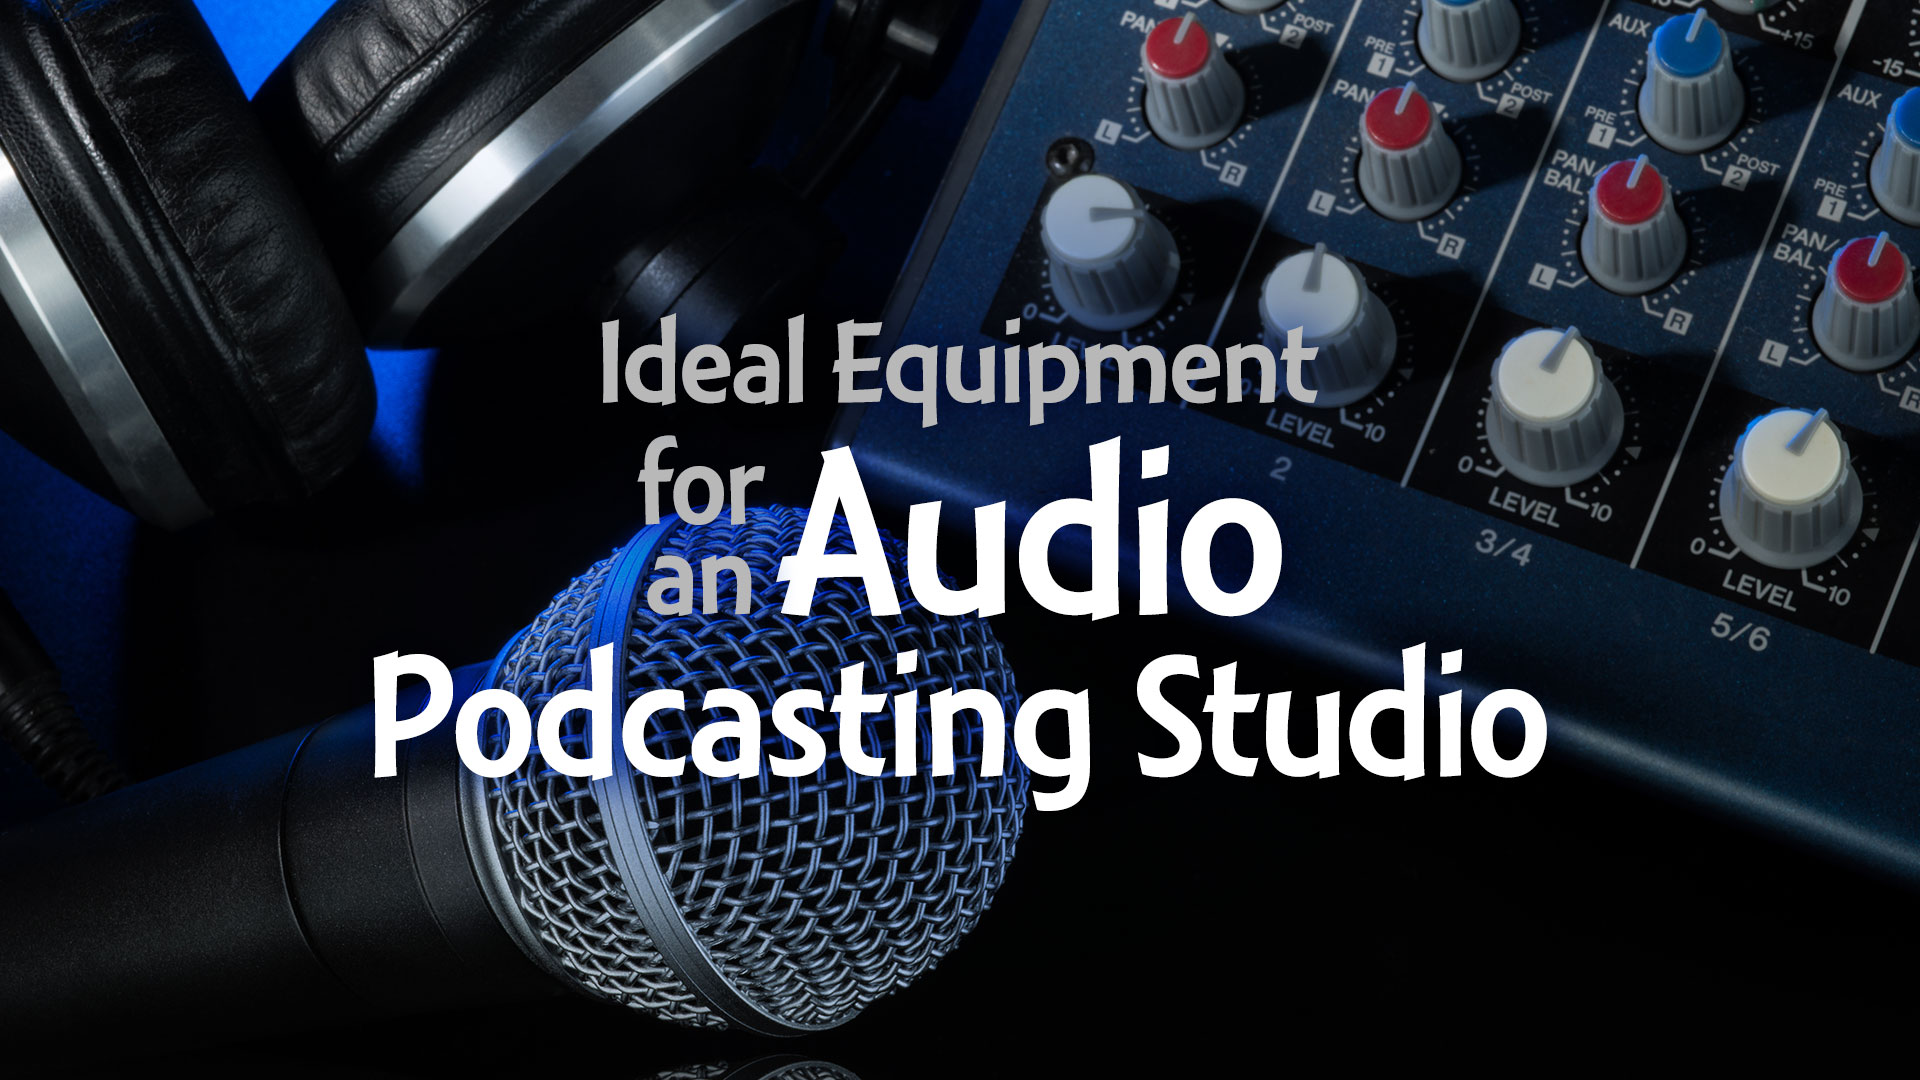 Ideal Equipment for an Audio Podcasting Studio